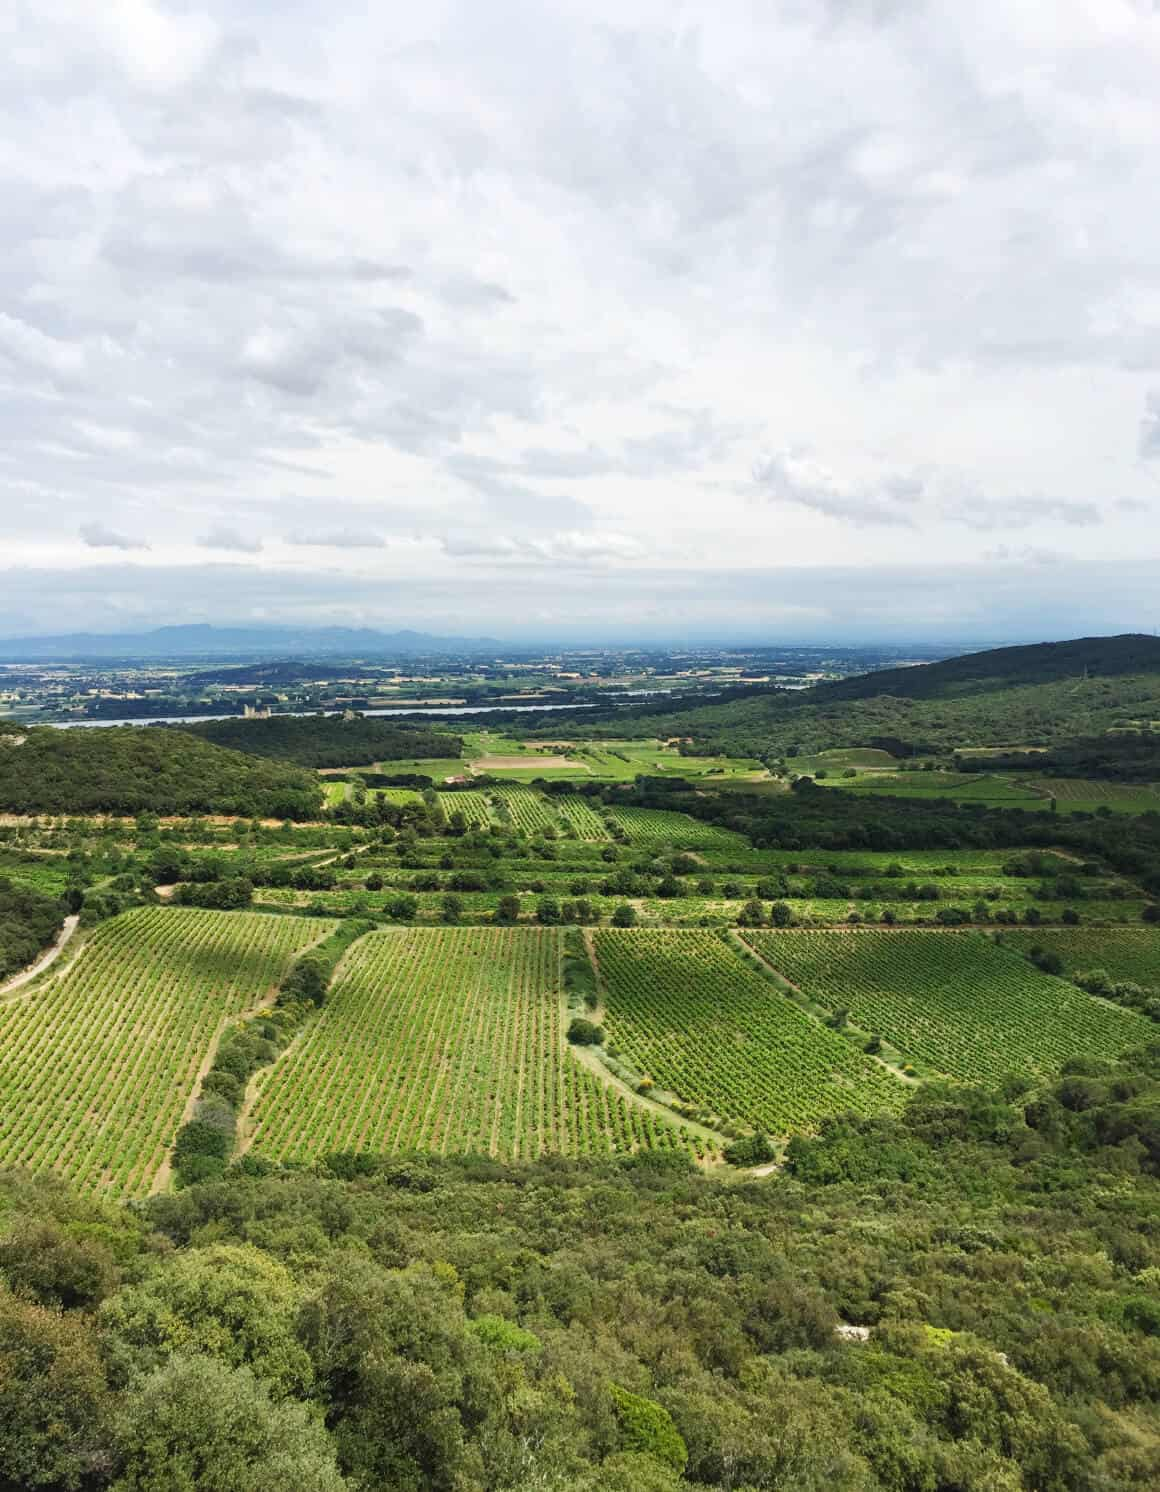 My Guide to the Rhone Valley, part II